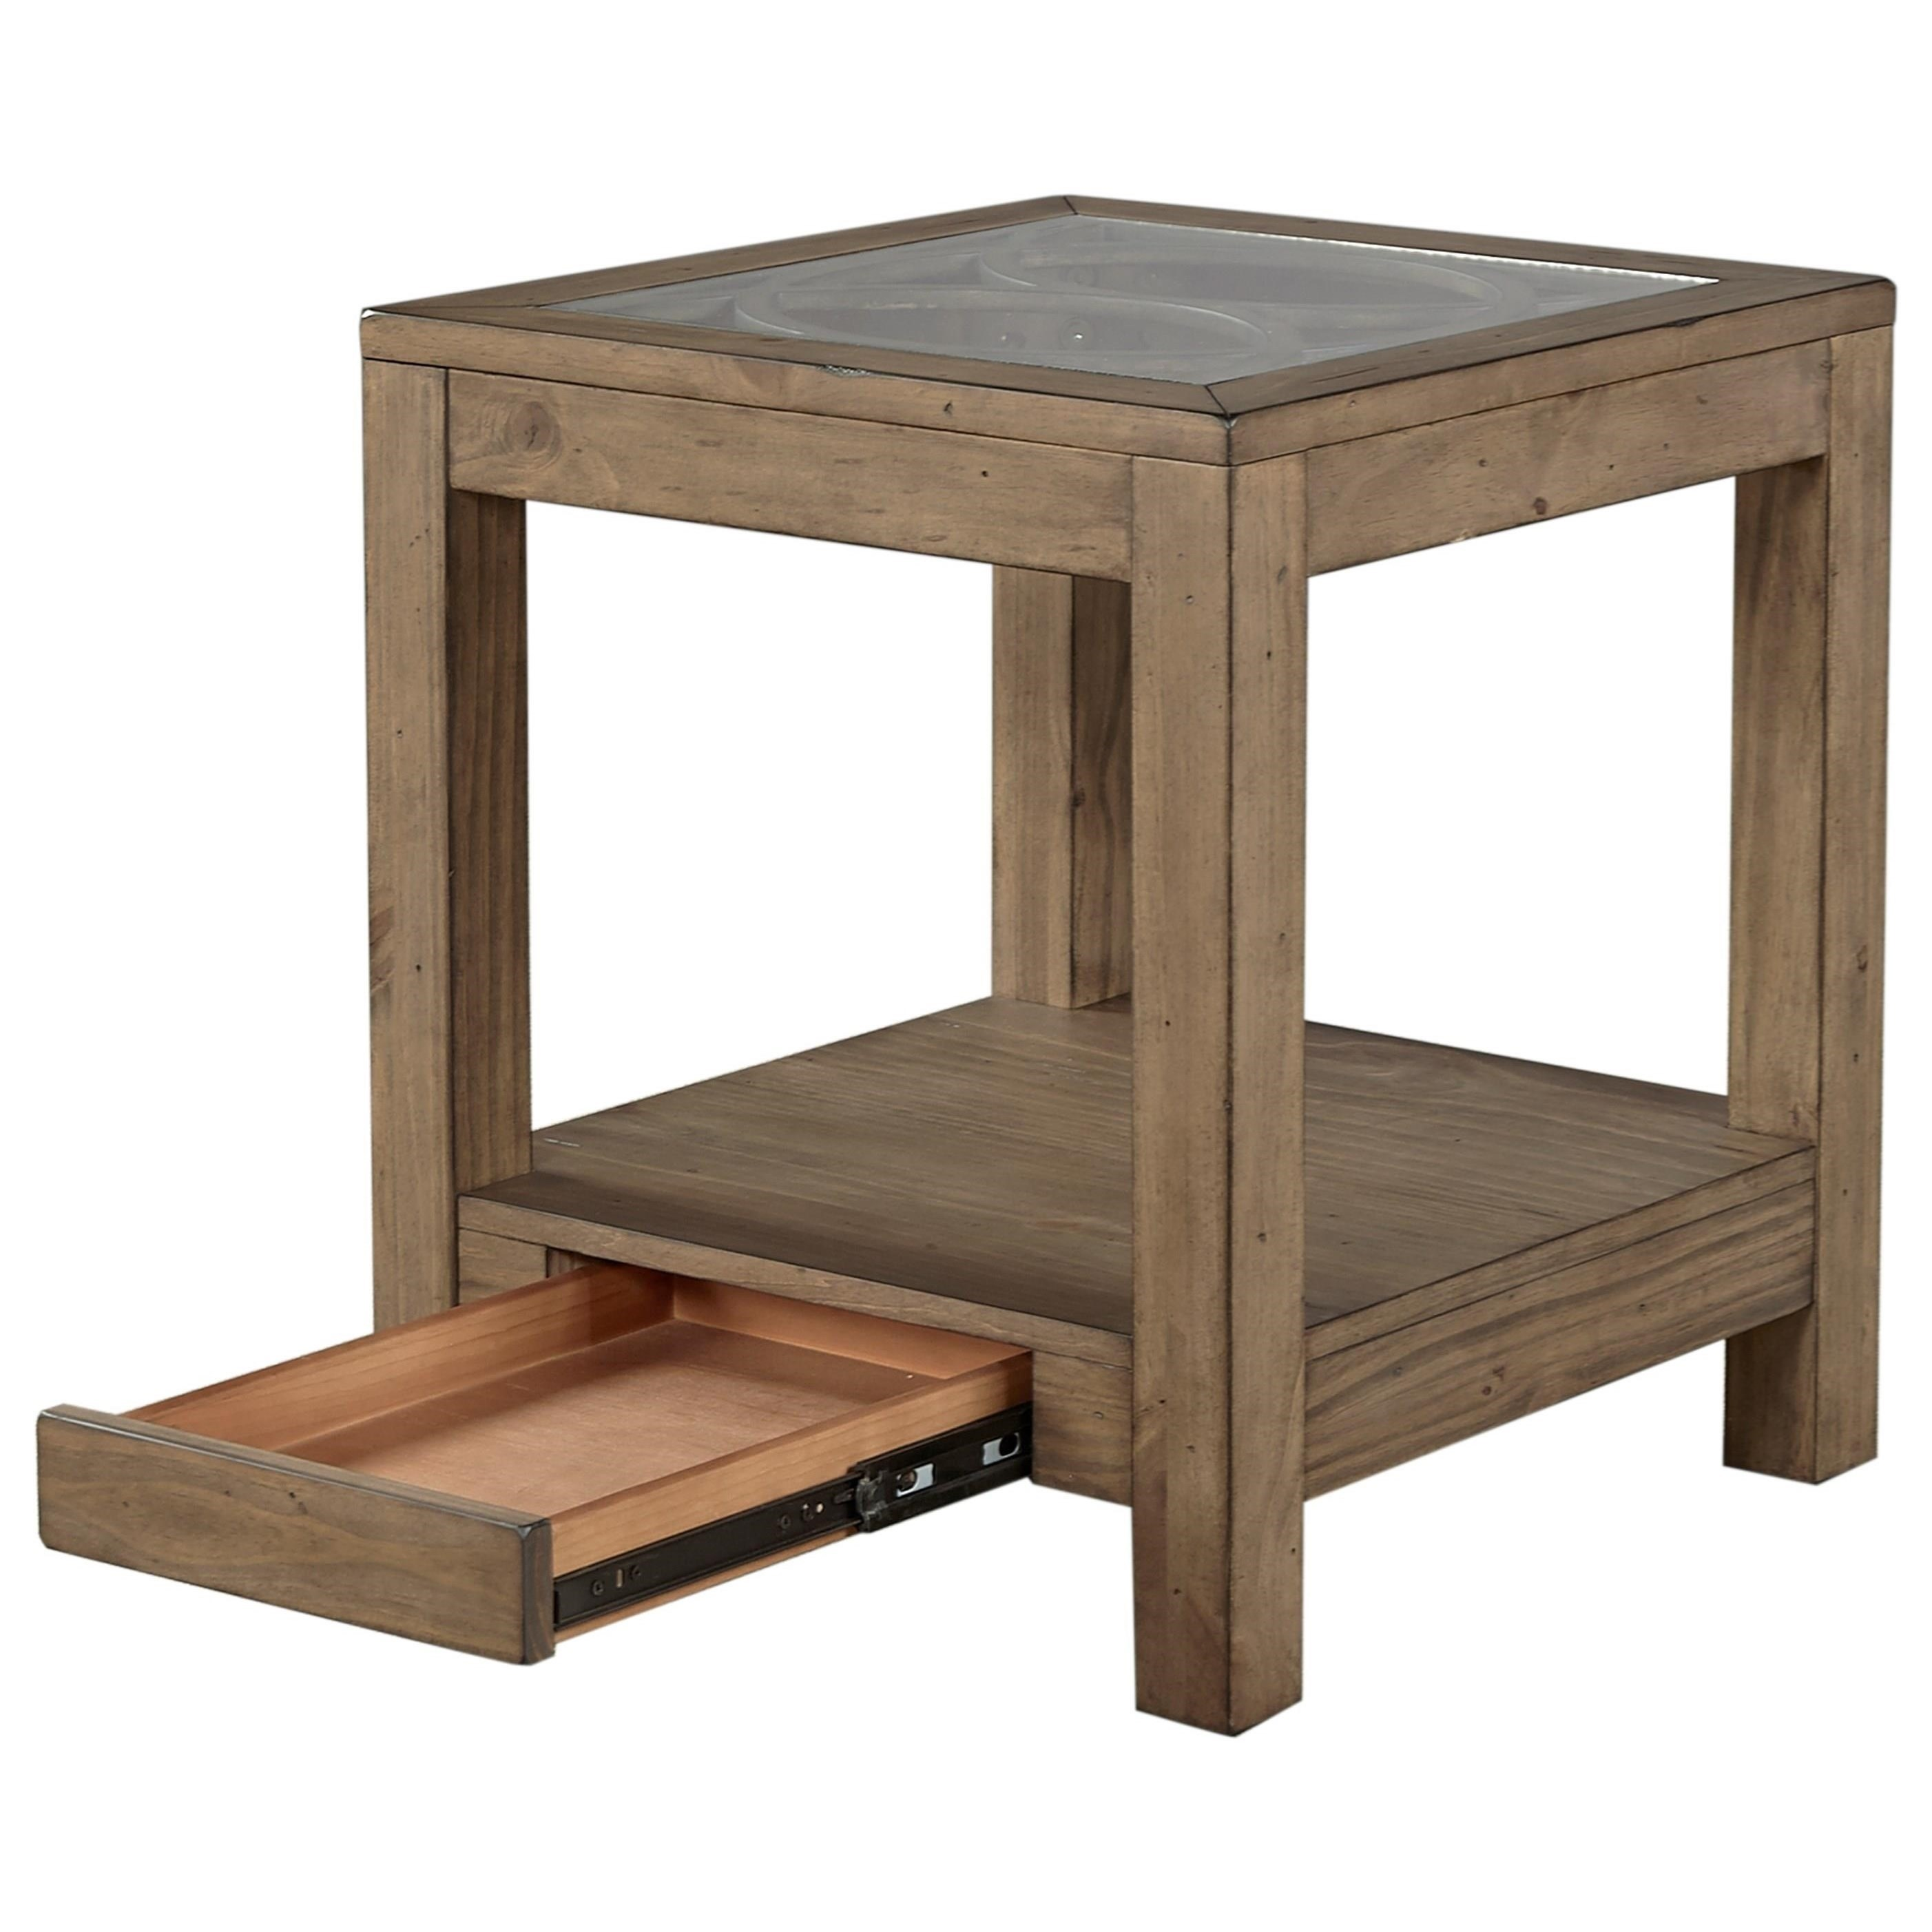 Highland court morris home end table with power outlet morris home end table Morris home furniture outlet